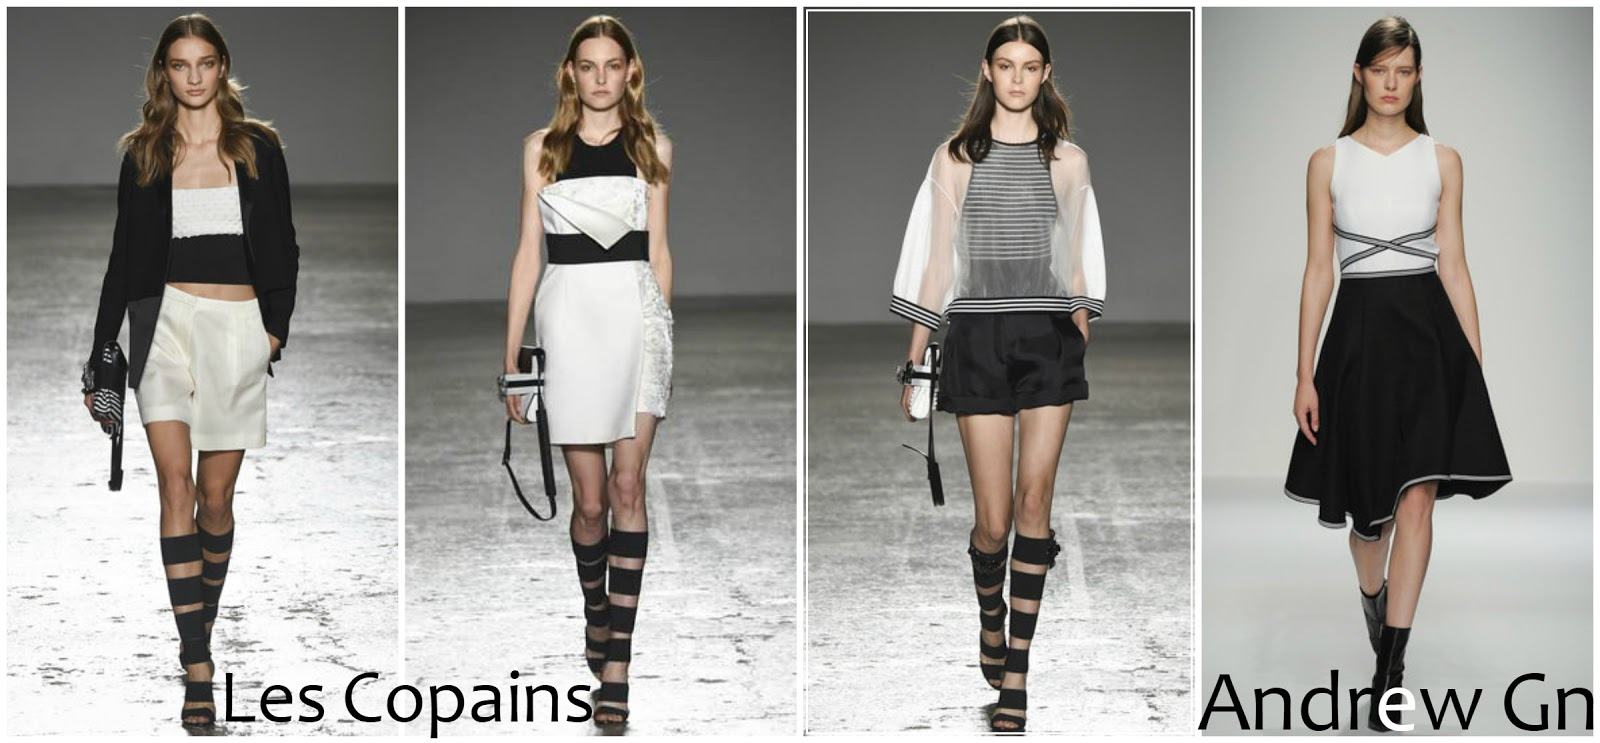 Les Copains Andrew Gn runway fashion